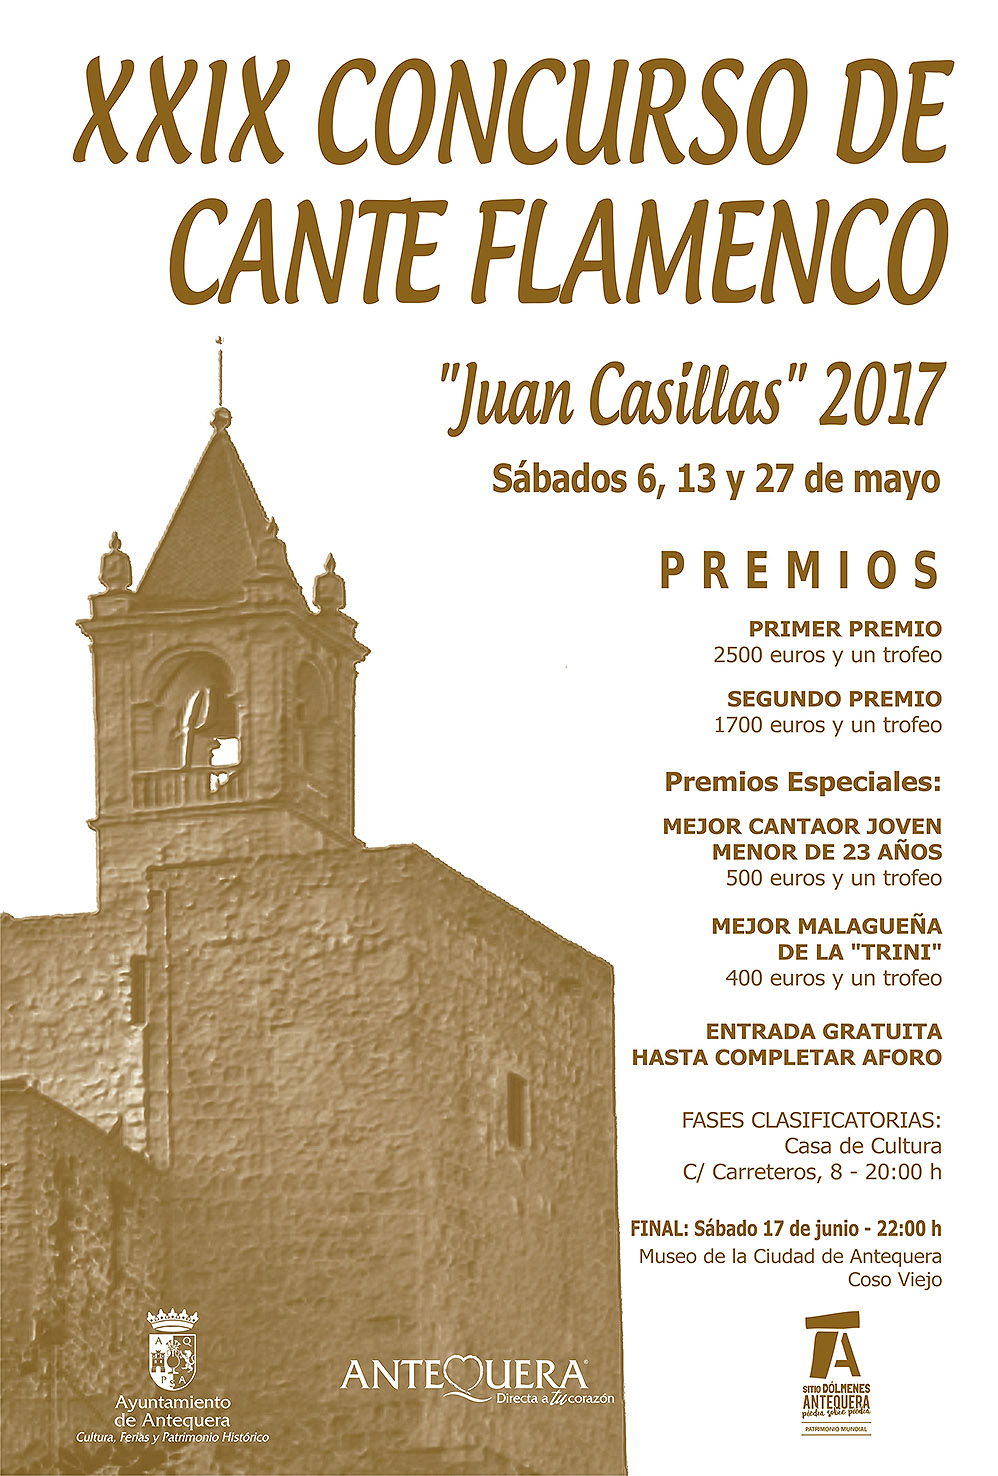 Cartel Concurso Cante Flamenco  Juan Casillas 2017